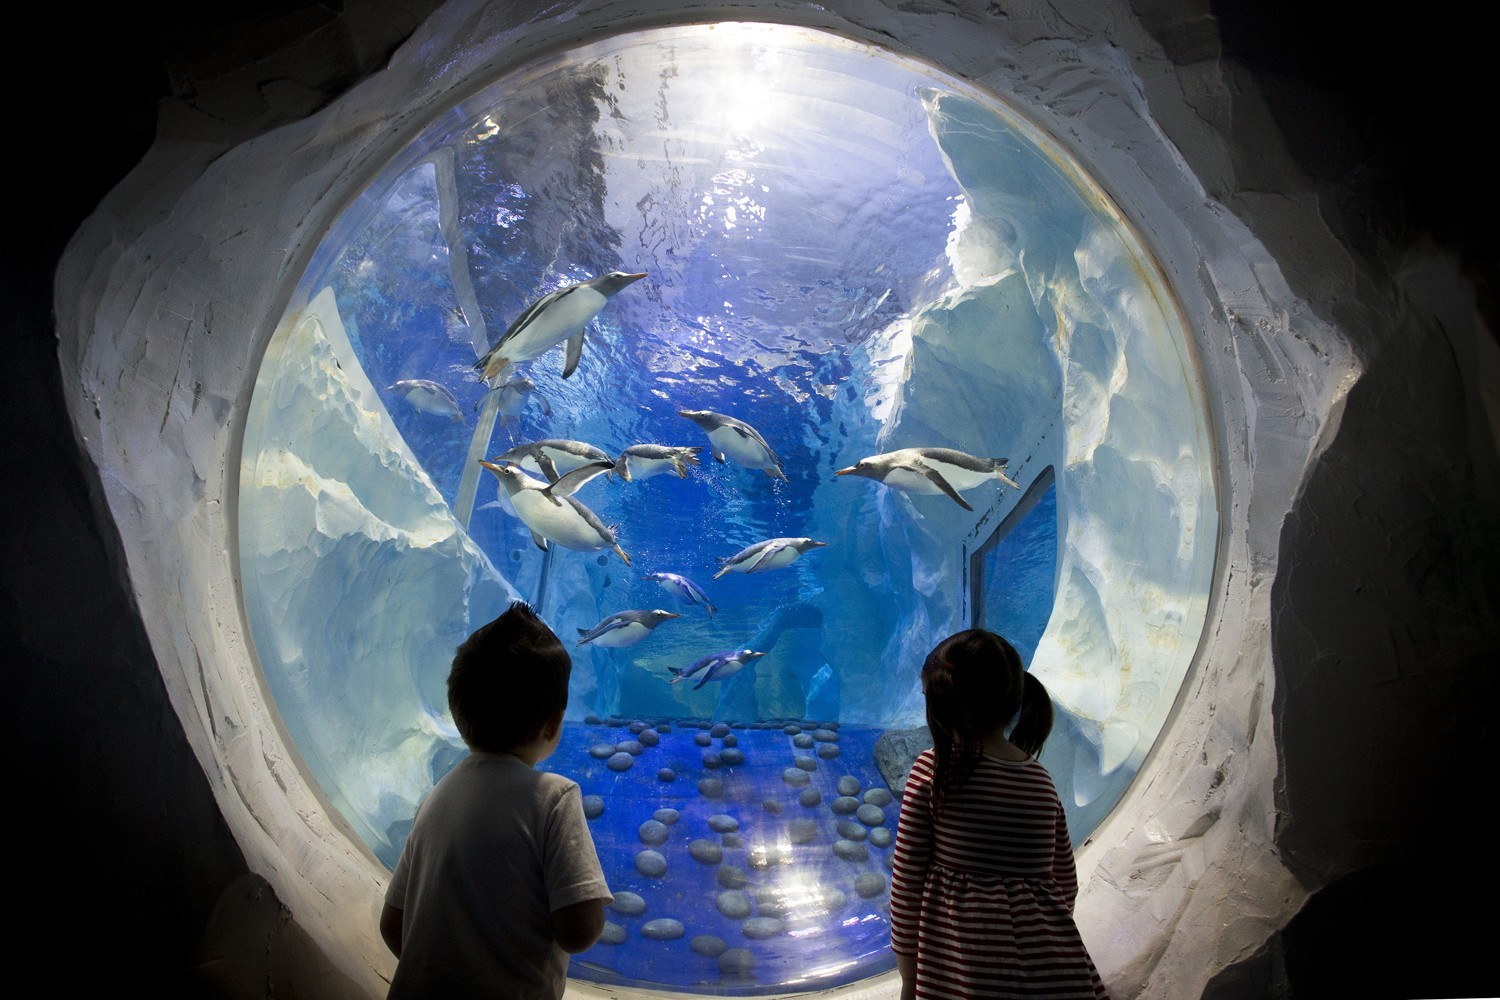 Don't miss out on one of the best places to visit in Sydney. Cheapest tickets and Sydney attractions passes when you buy tickets online through SEA LIFE Sydney Aquarium. What are you waiting for? Come and see a top attraction in Sydney!